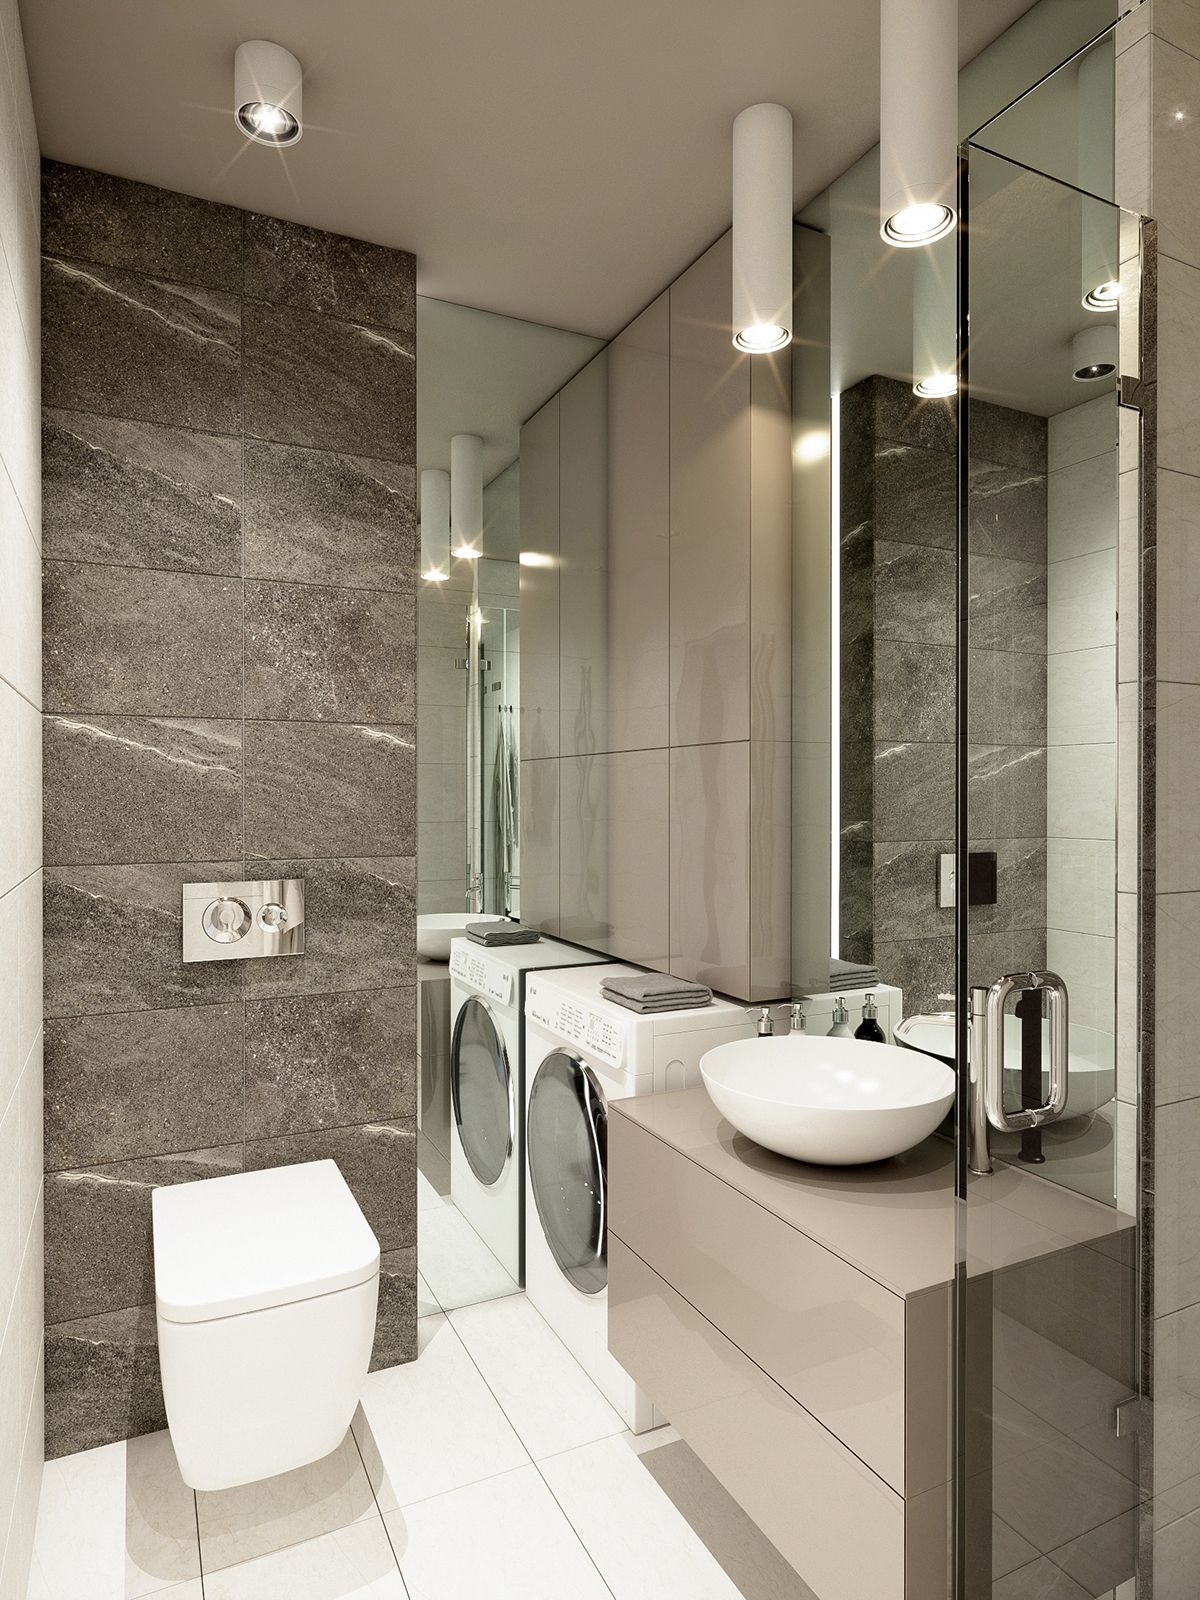 Bathroom Ideas Apartment Design Is Agreed Important For Your Home Whether You Pick The Luxury Bathroom Ma Apartment Bathroom Luxury Bathroom Bathroom Interior